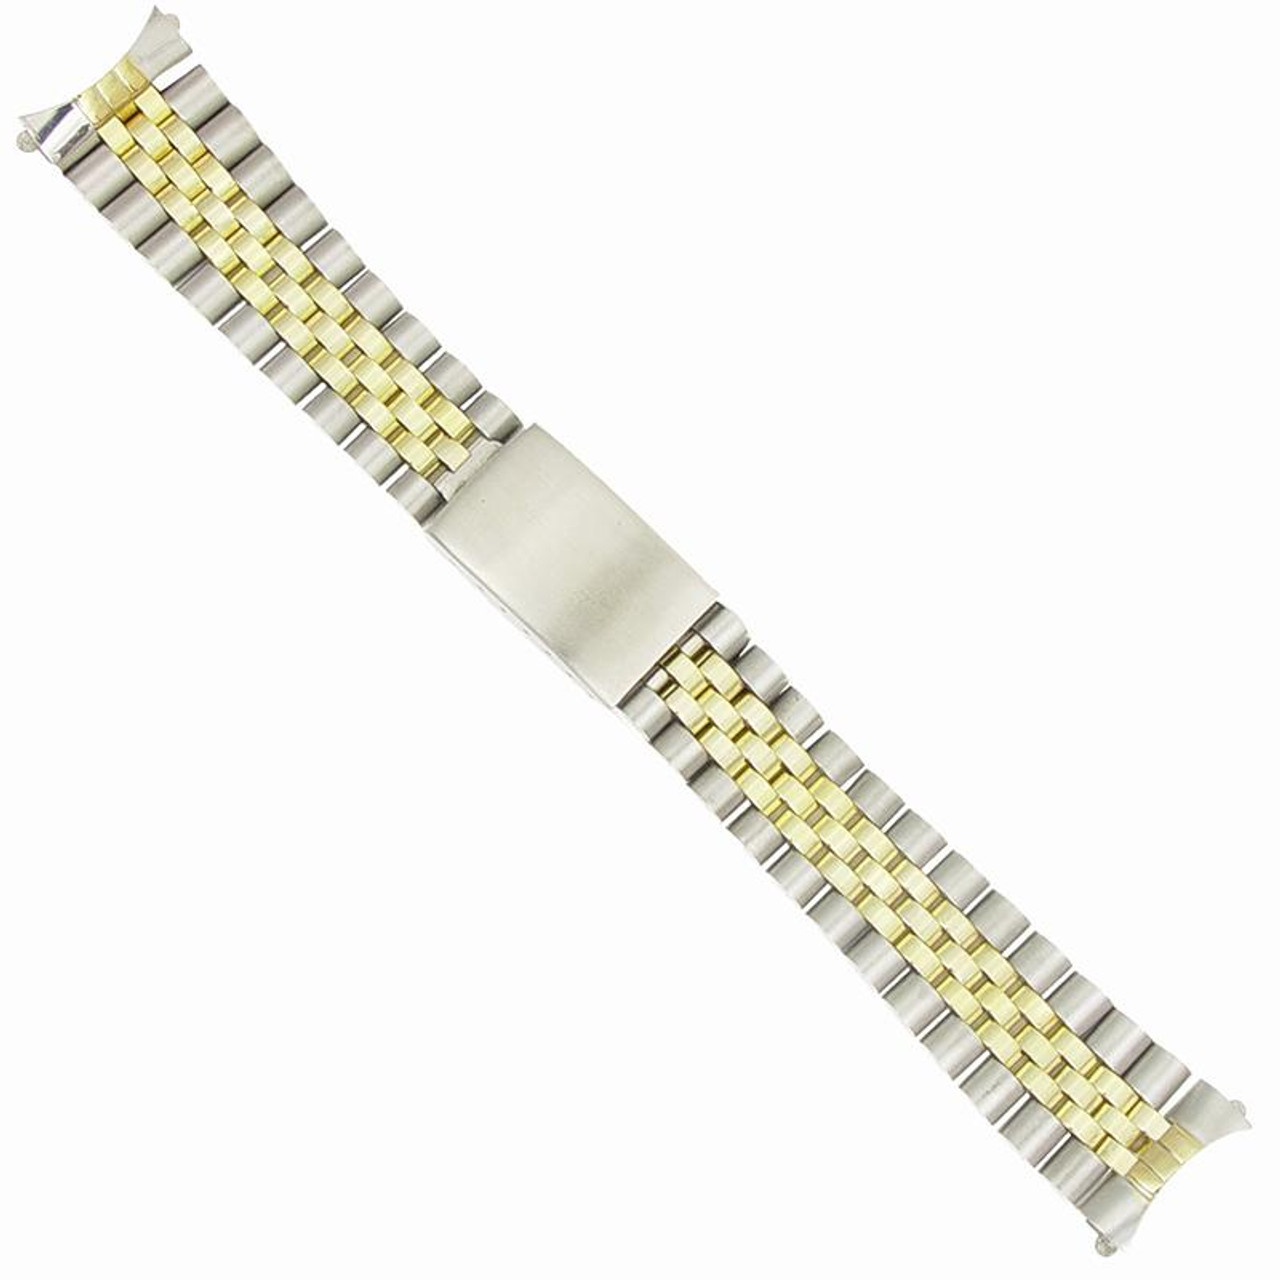 Generic 20mm Rolex® Bracelets Gents Jubilee® Stainless Two Tone Watch Band  6 1/8 Inch length